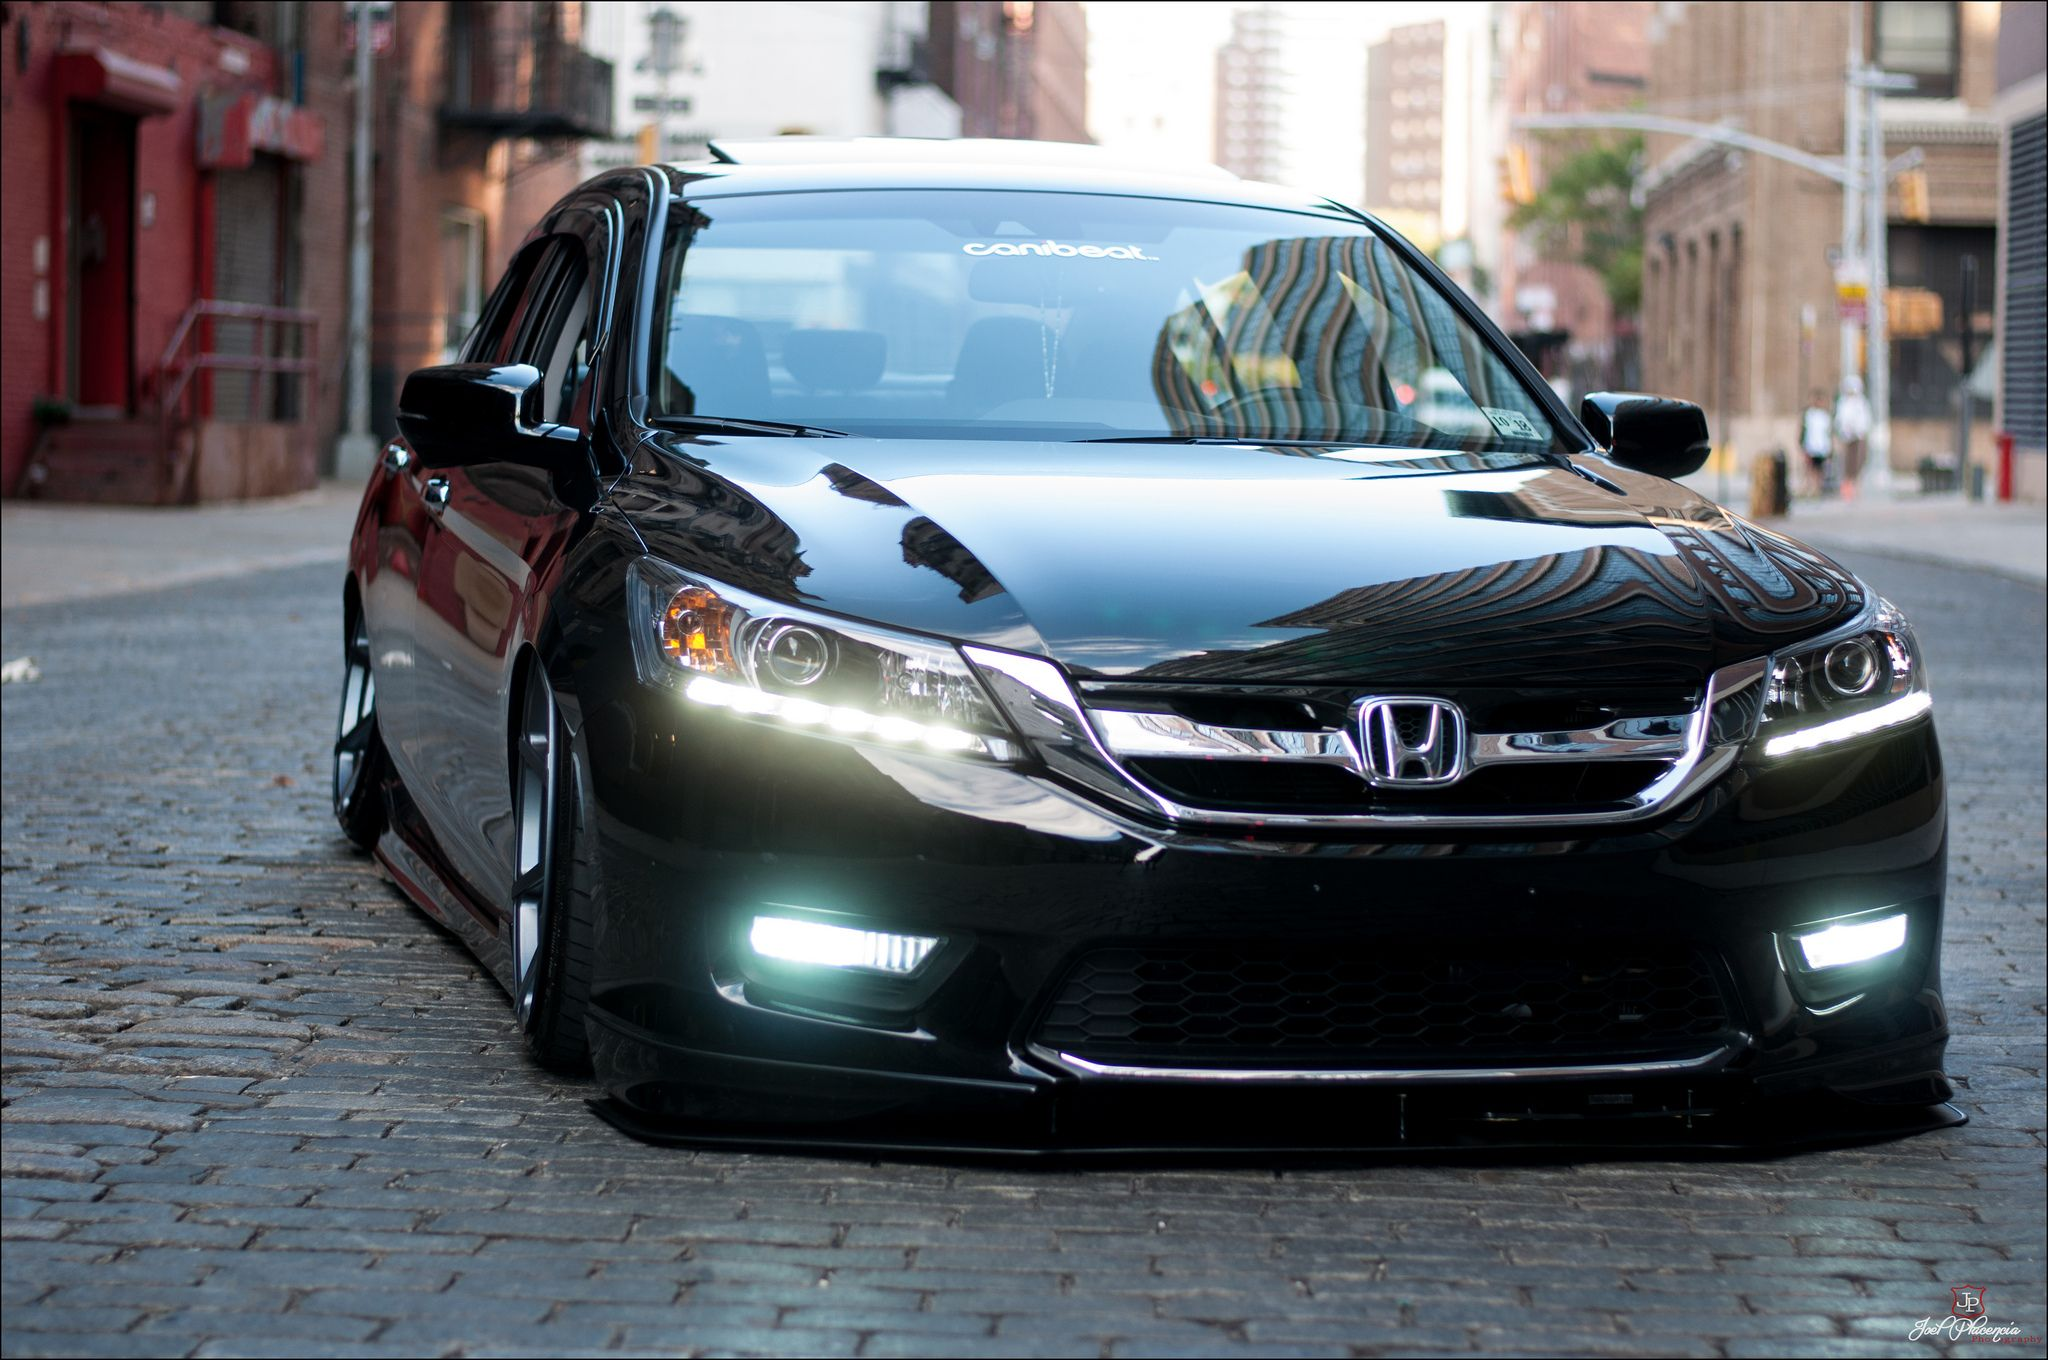 Delicieux 2013 Honda Accord Bagged On Velgen VMB8 20x10.5 Matte Gunmetal | Flickr    Photo